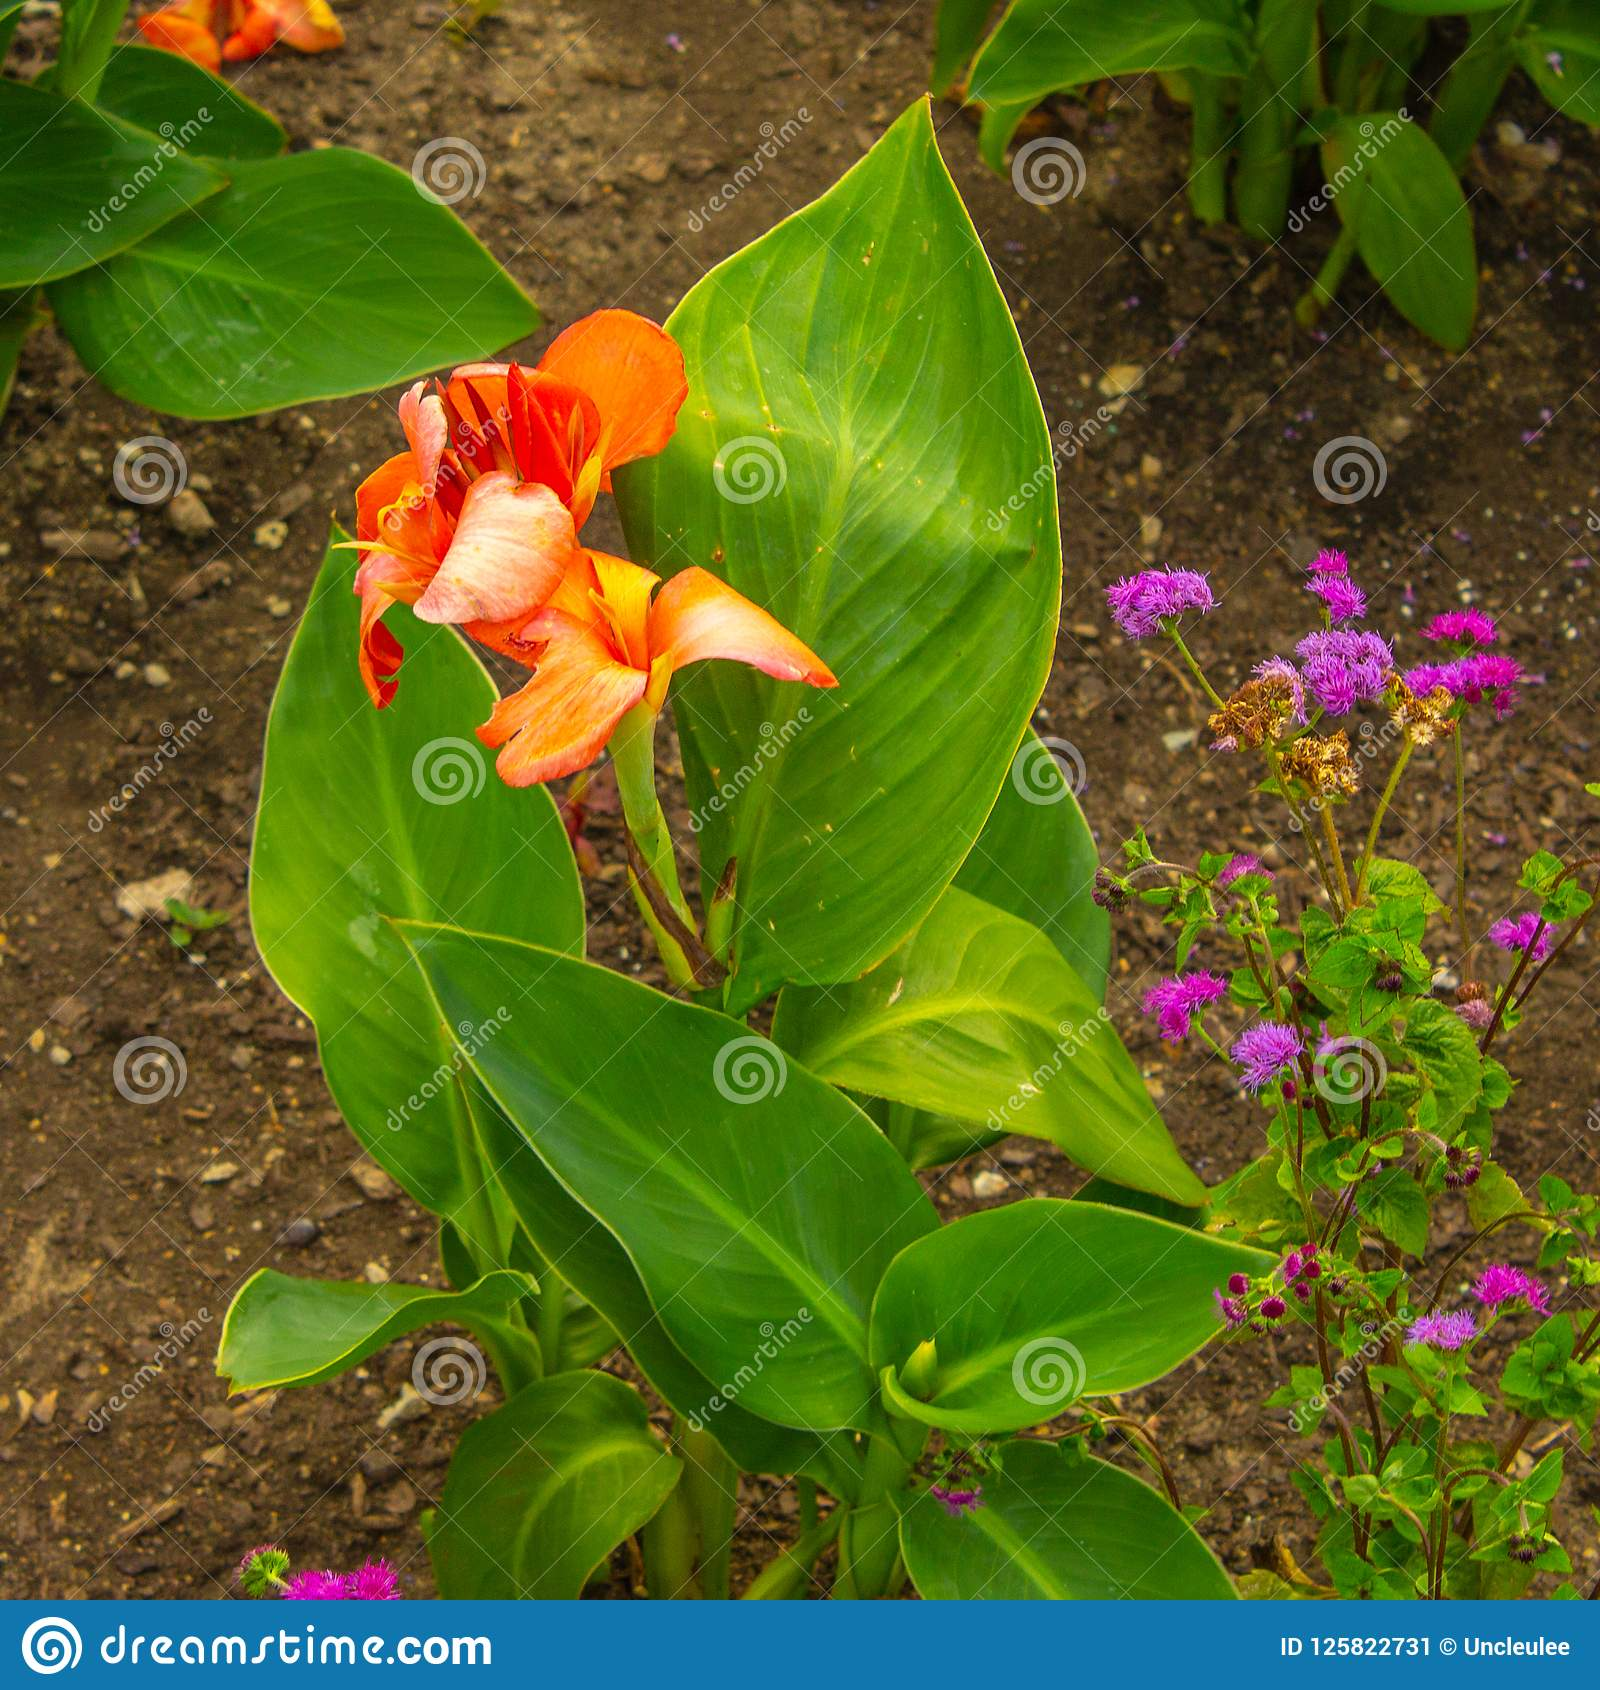 Canna Lily Plant And Flower Stock Image Image Of Natural Color